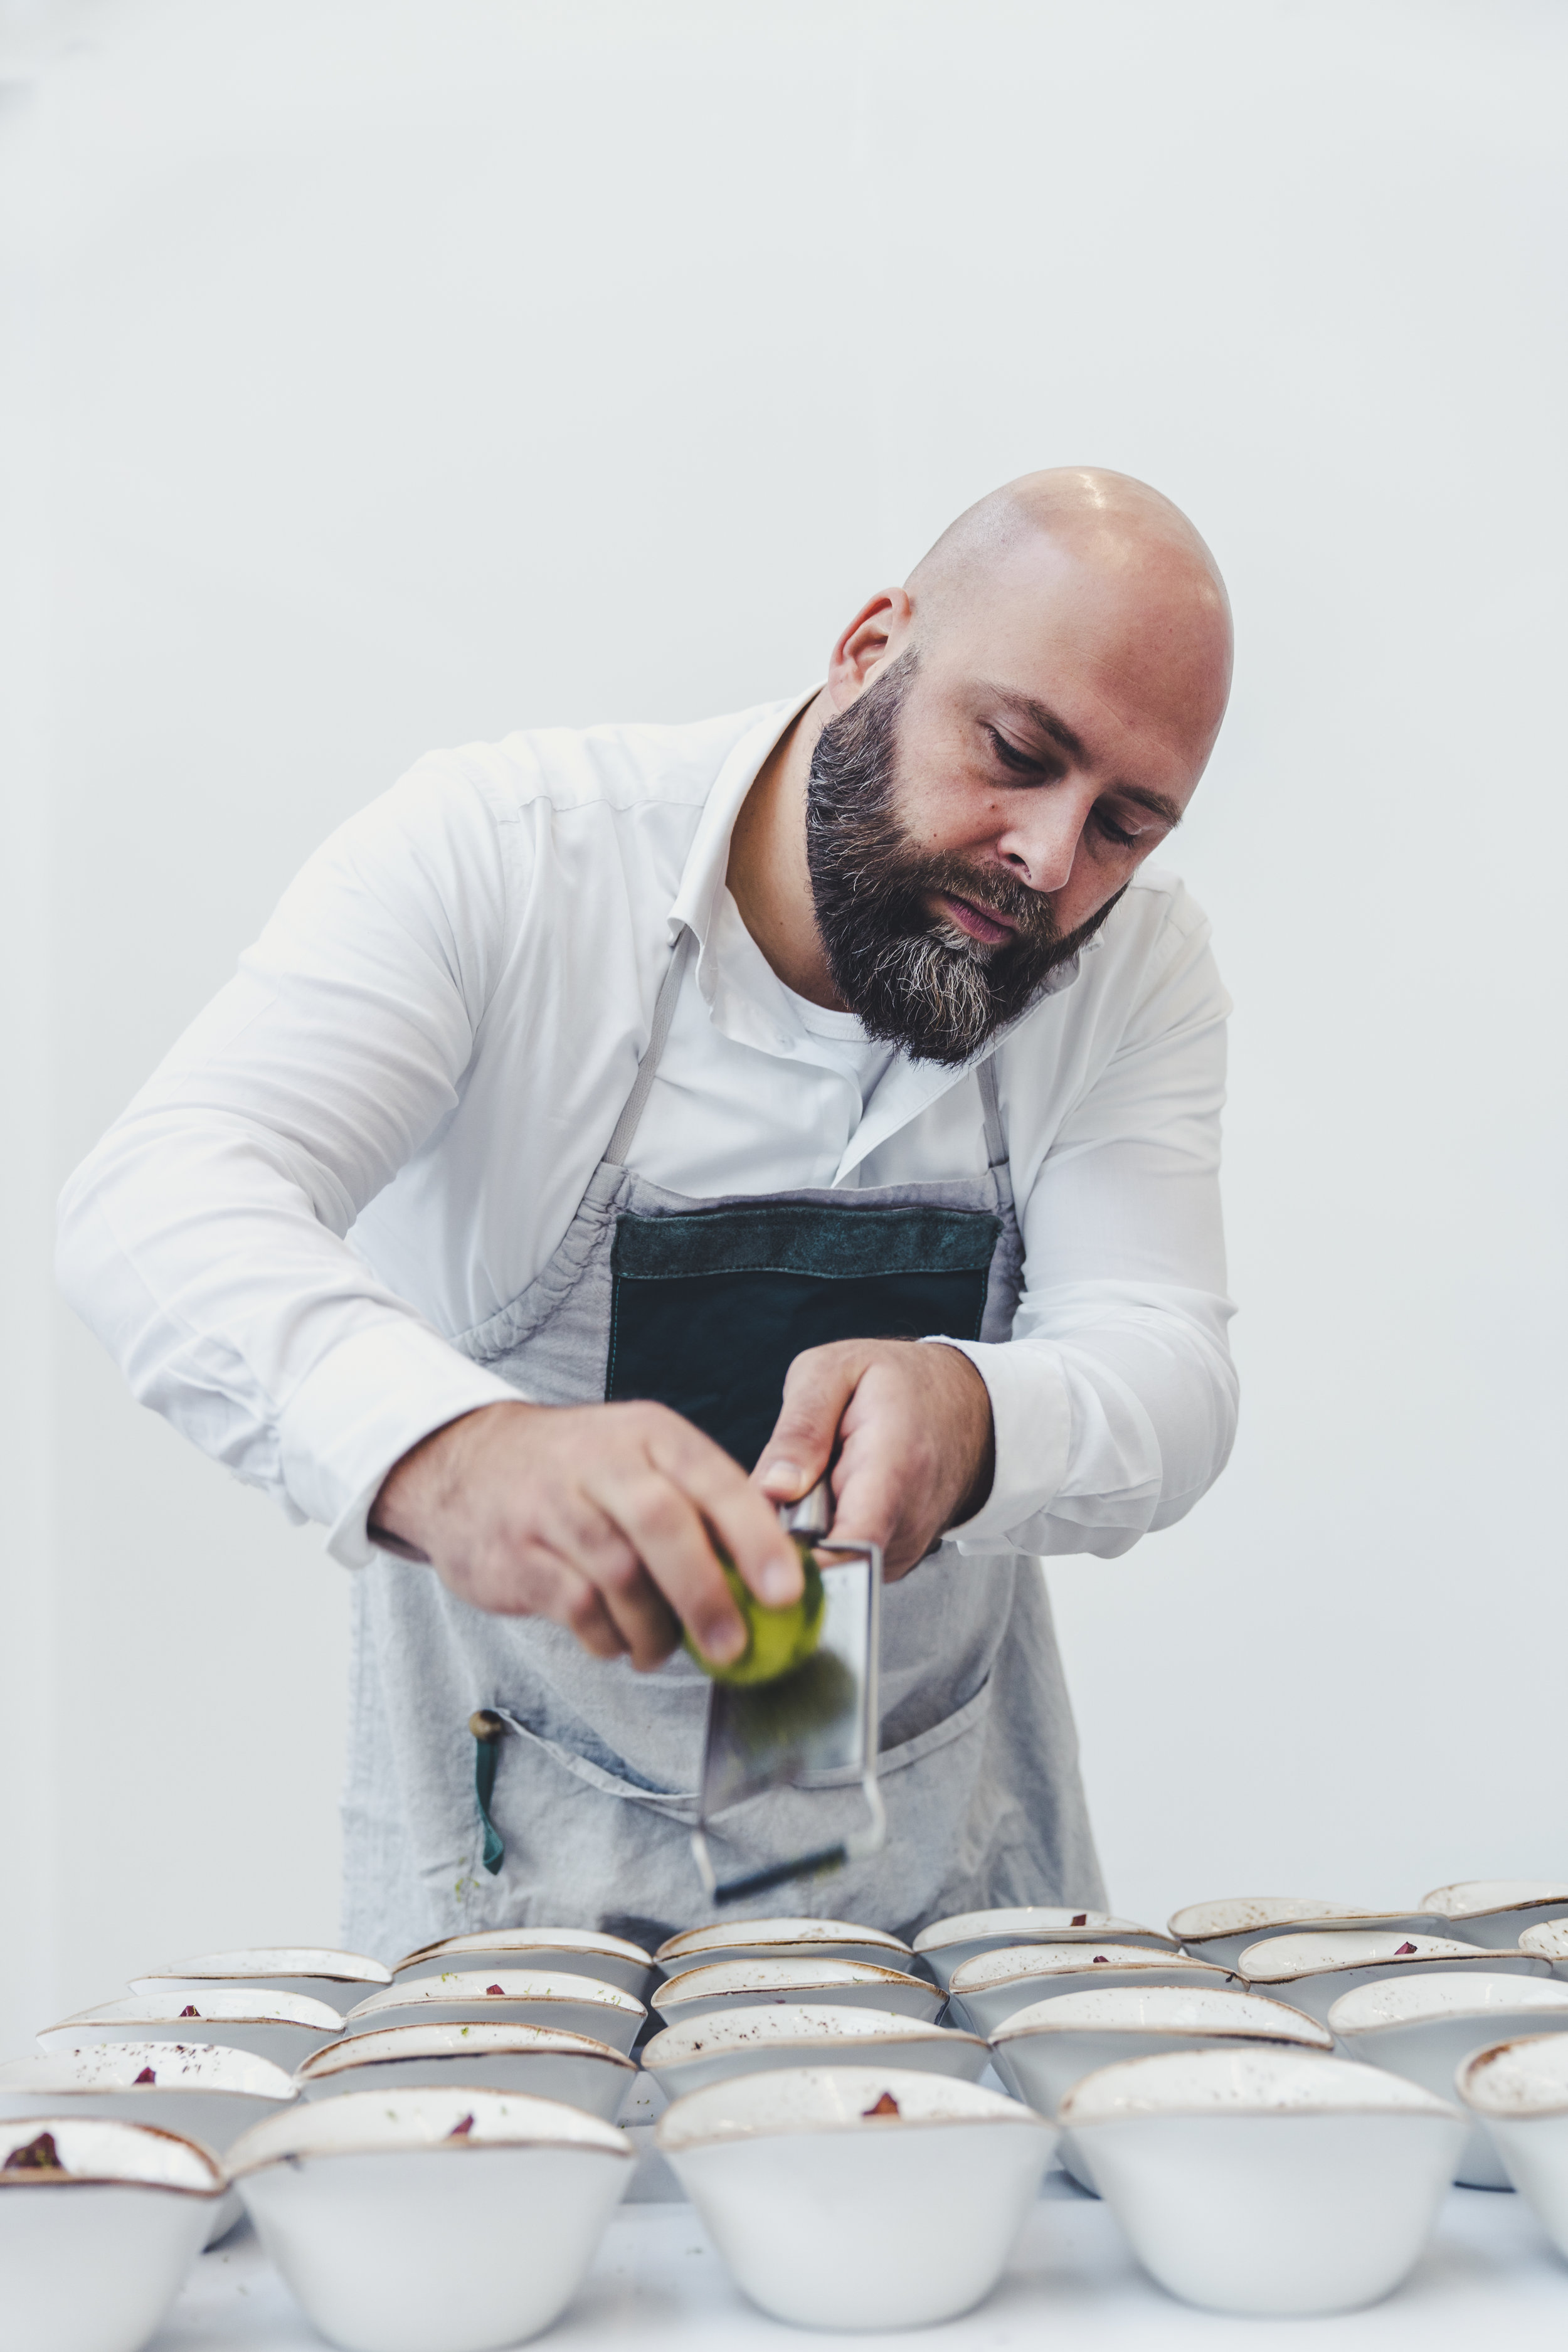 Remco is a passionated chef. His beard is REAL! During the week he works as a pricing manager for YoungCapital.